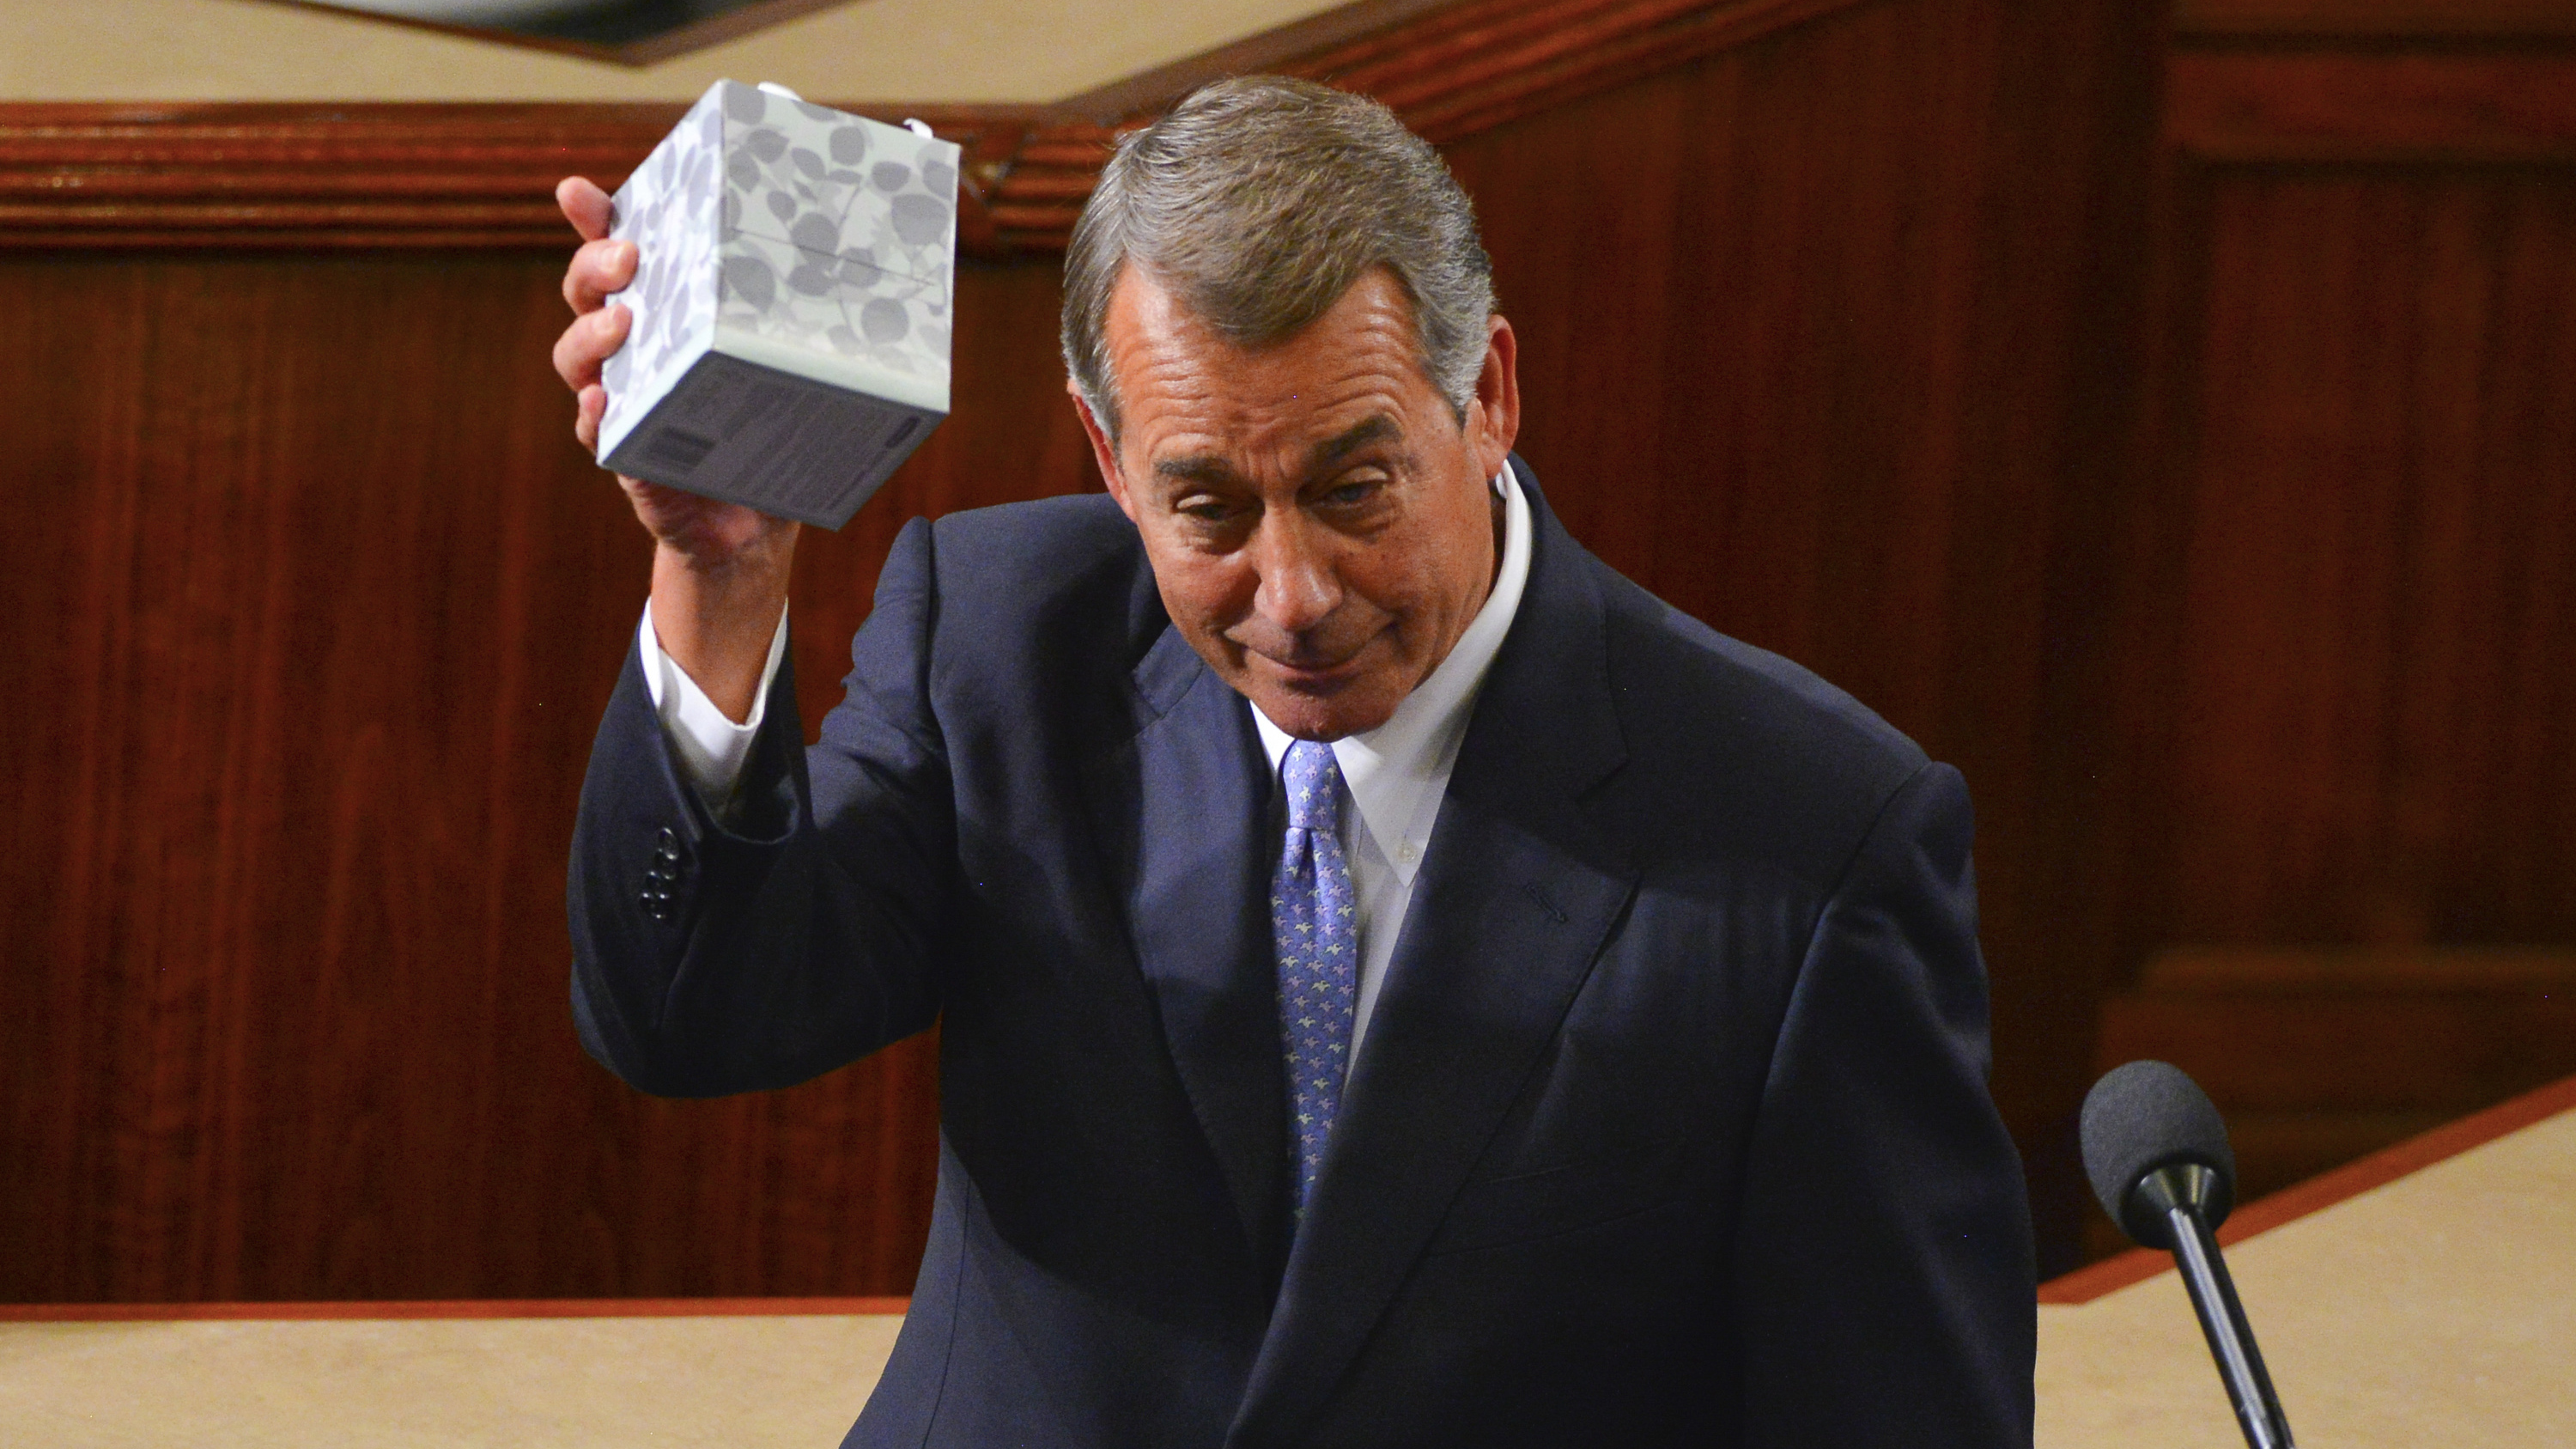 Boehner Says He's Never 'Worked With A More Miserable Son Of A Bitch' Than Cruz